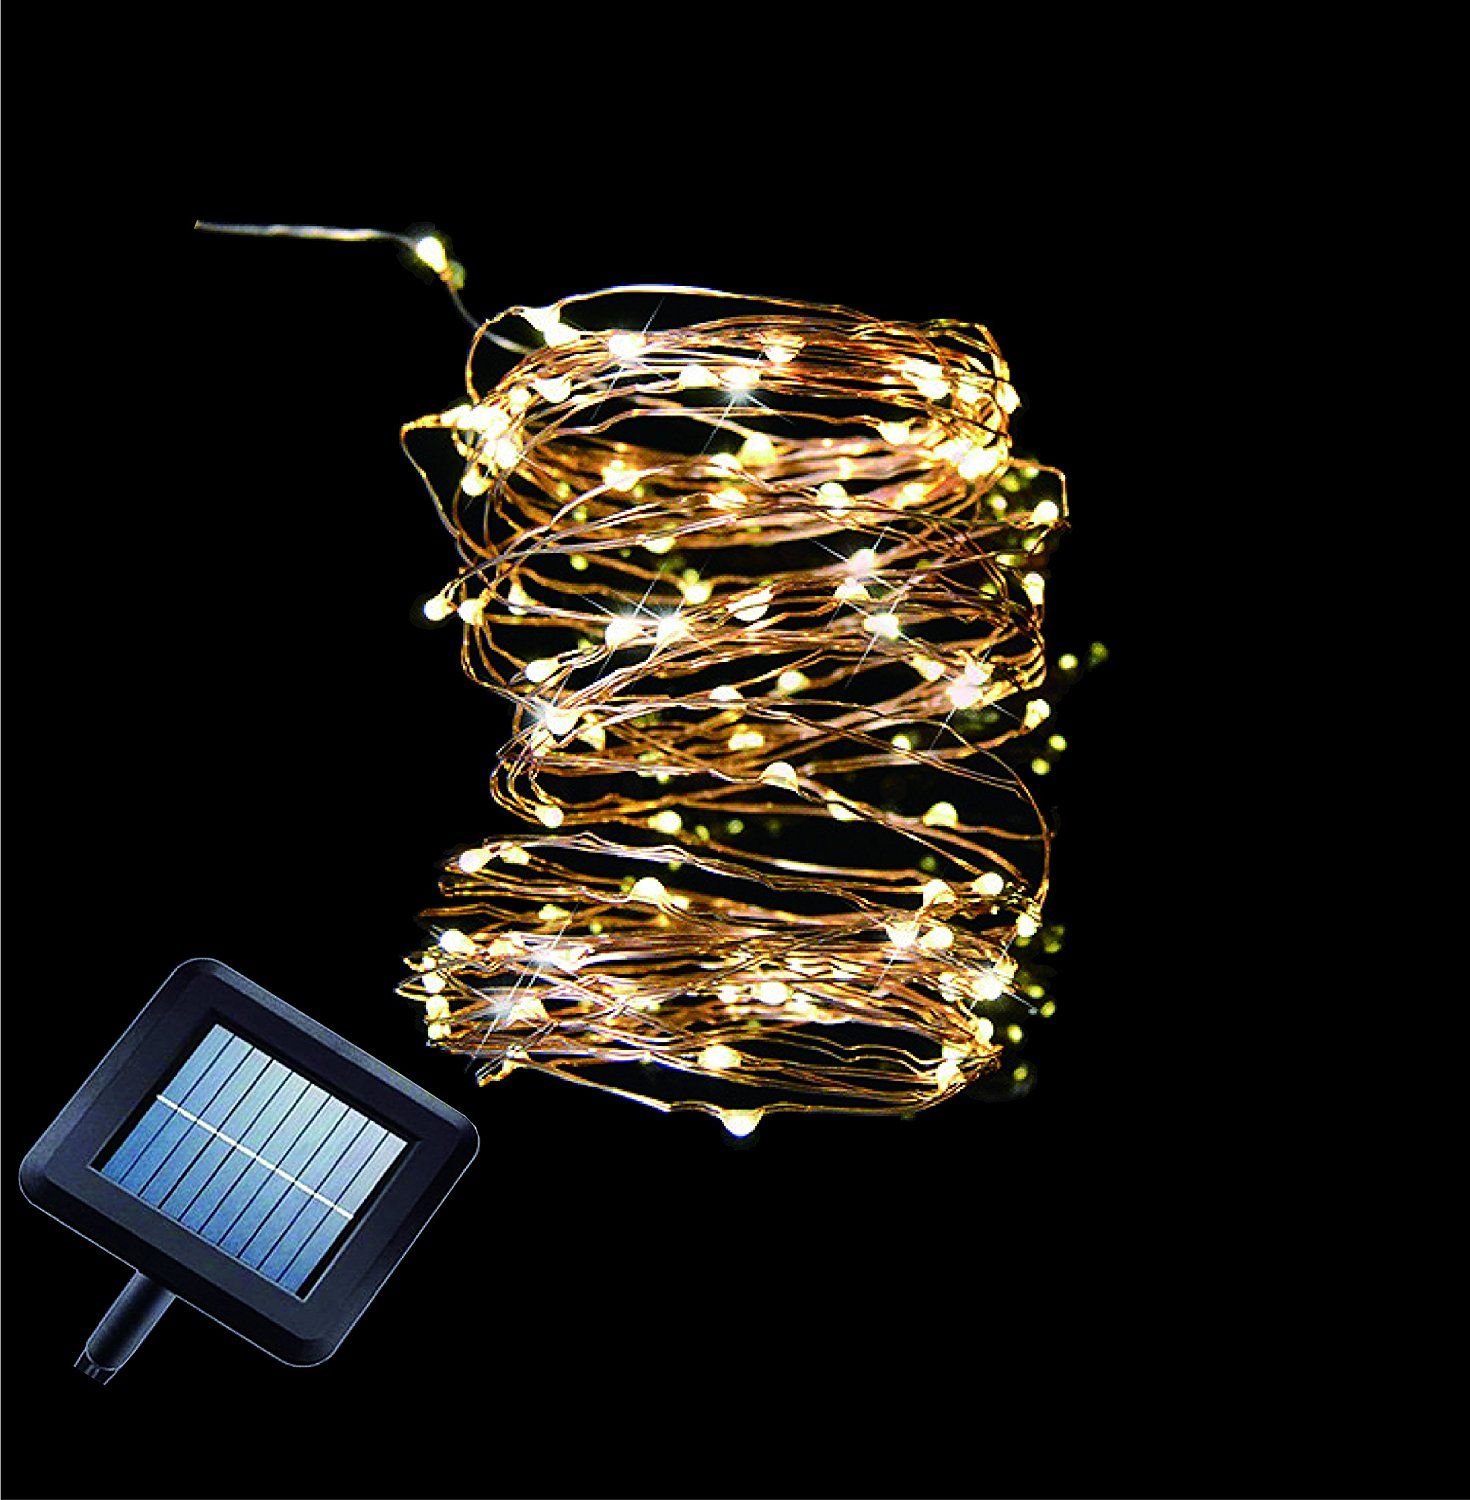 Solar lights outdoor String Lights - Led Christmas Lights, 33 ft Copper Wire, 100 LEDs solar ...